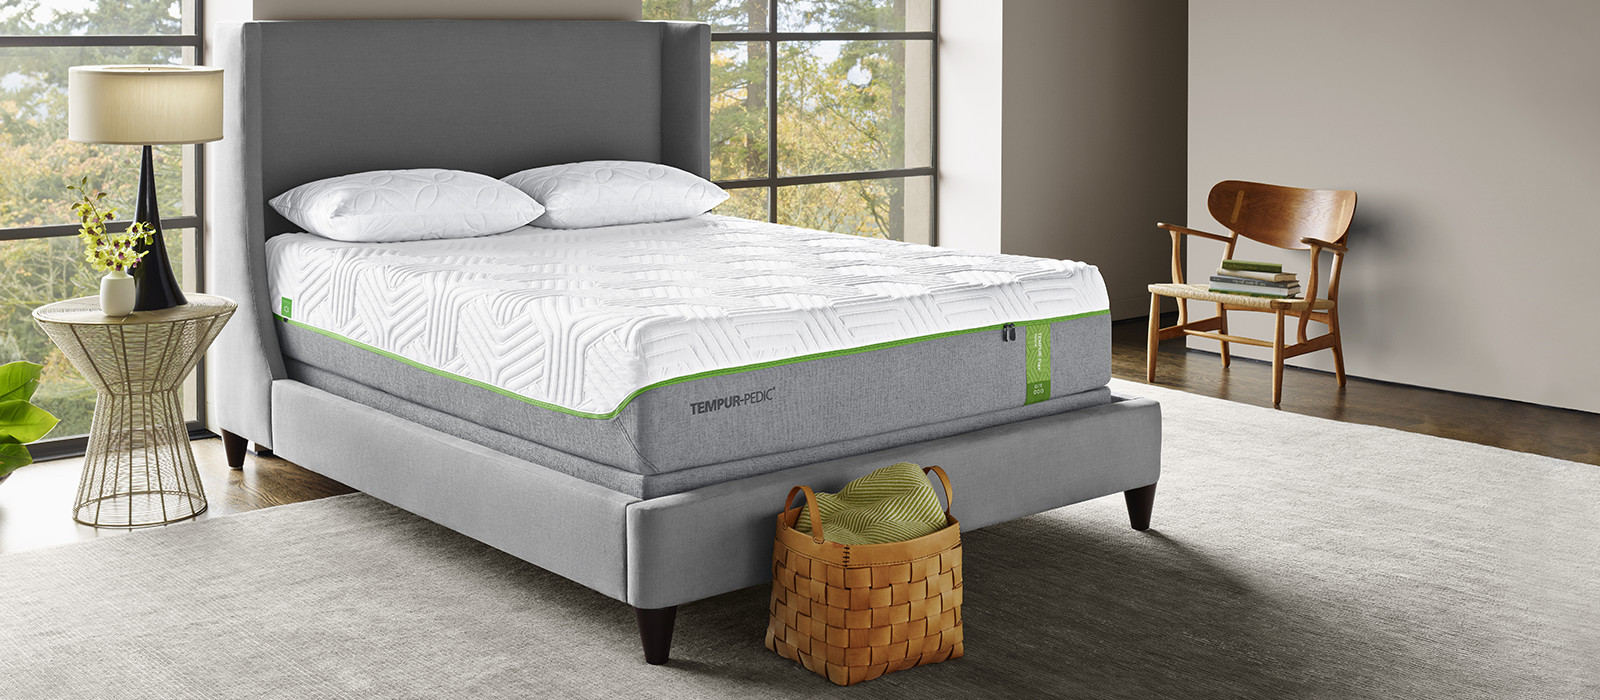 Tempurpedic Mattress Reviews >> TEMPUR-Flex Elite Mattress | Tempur-Pedic